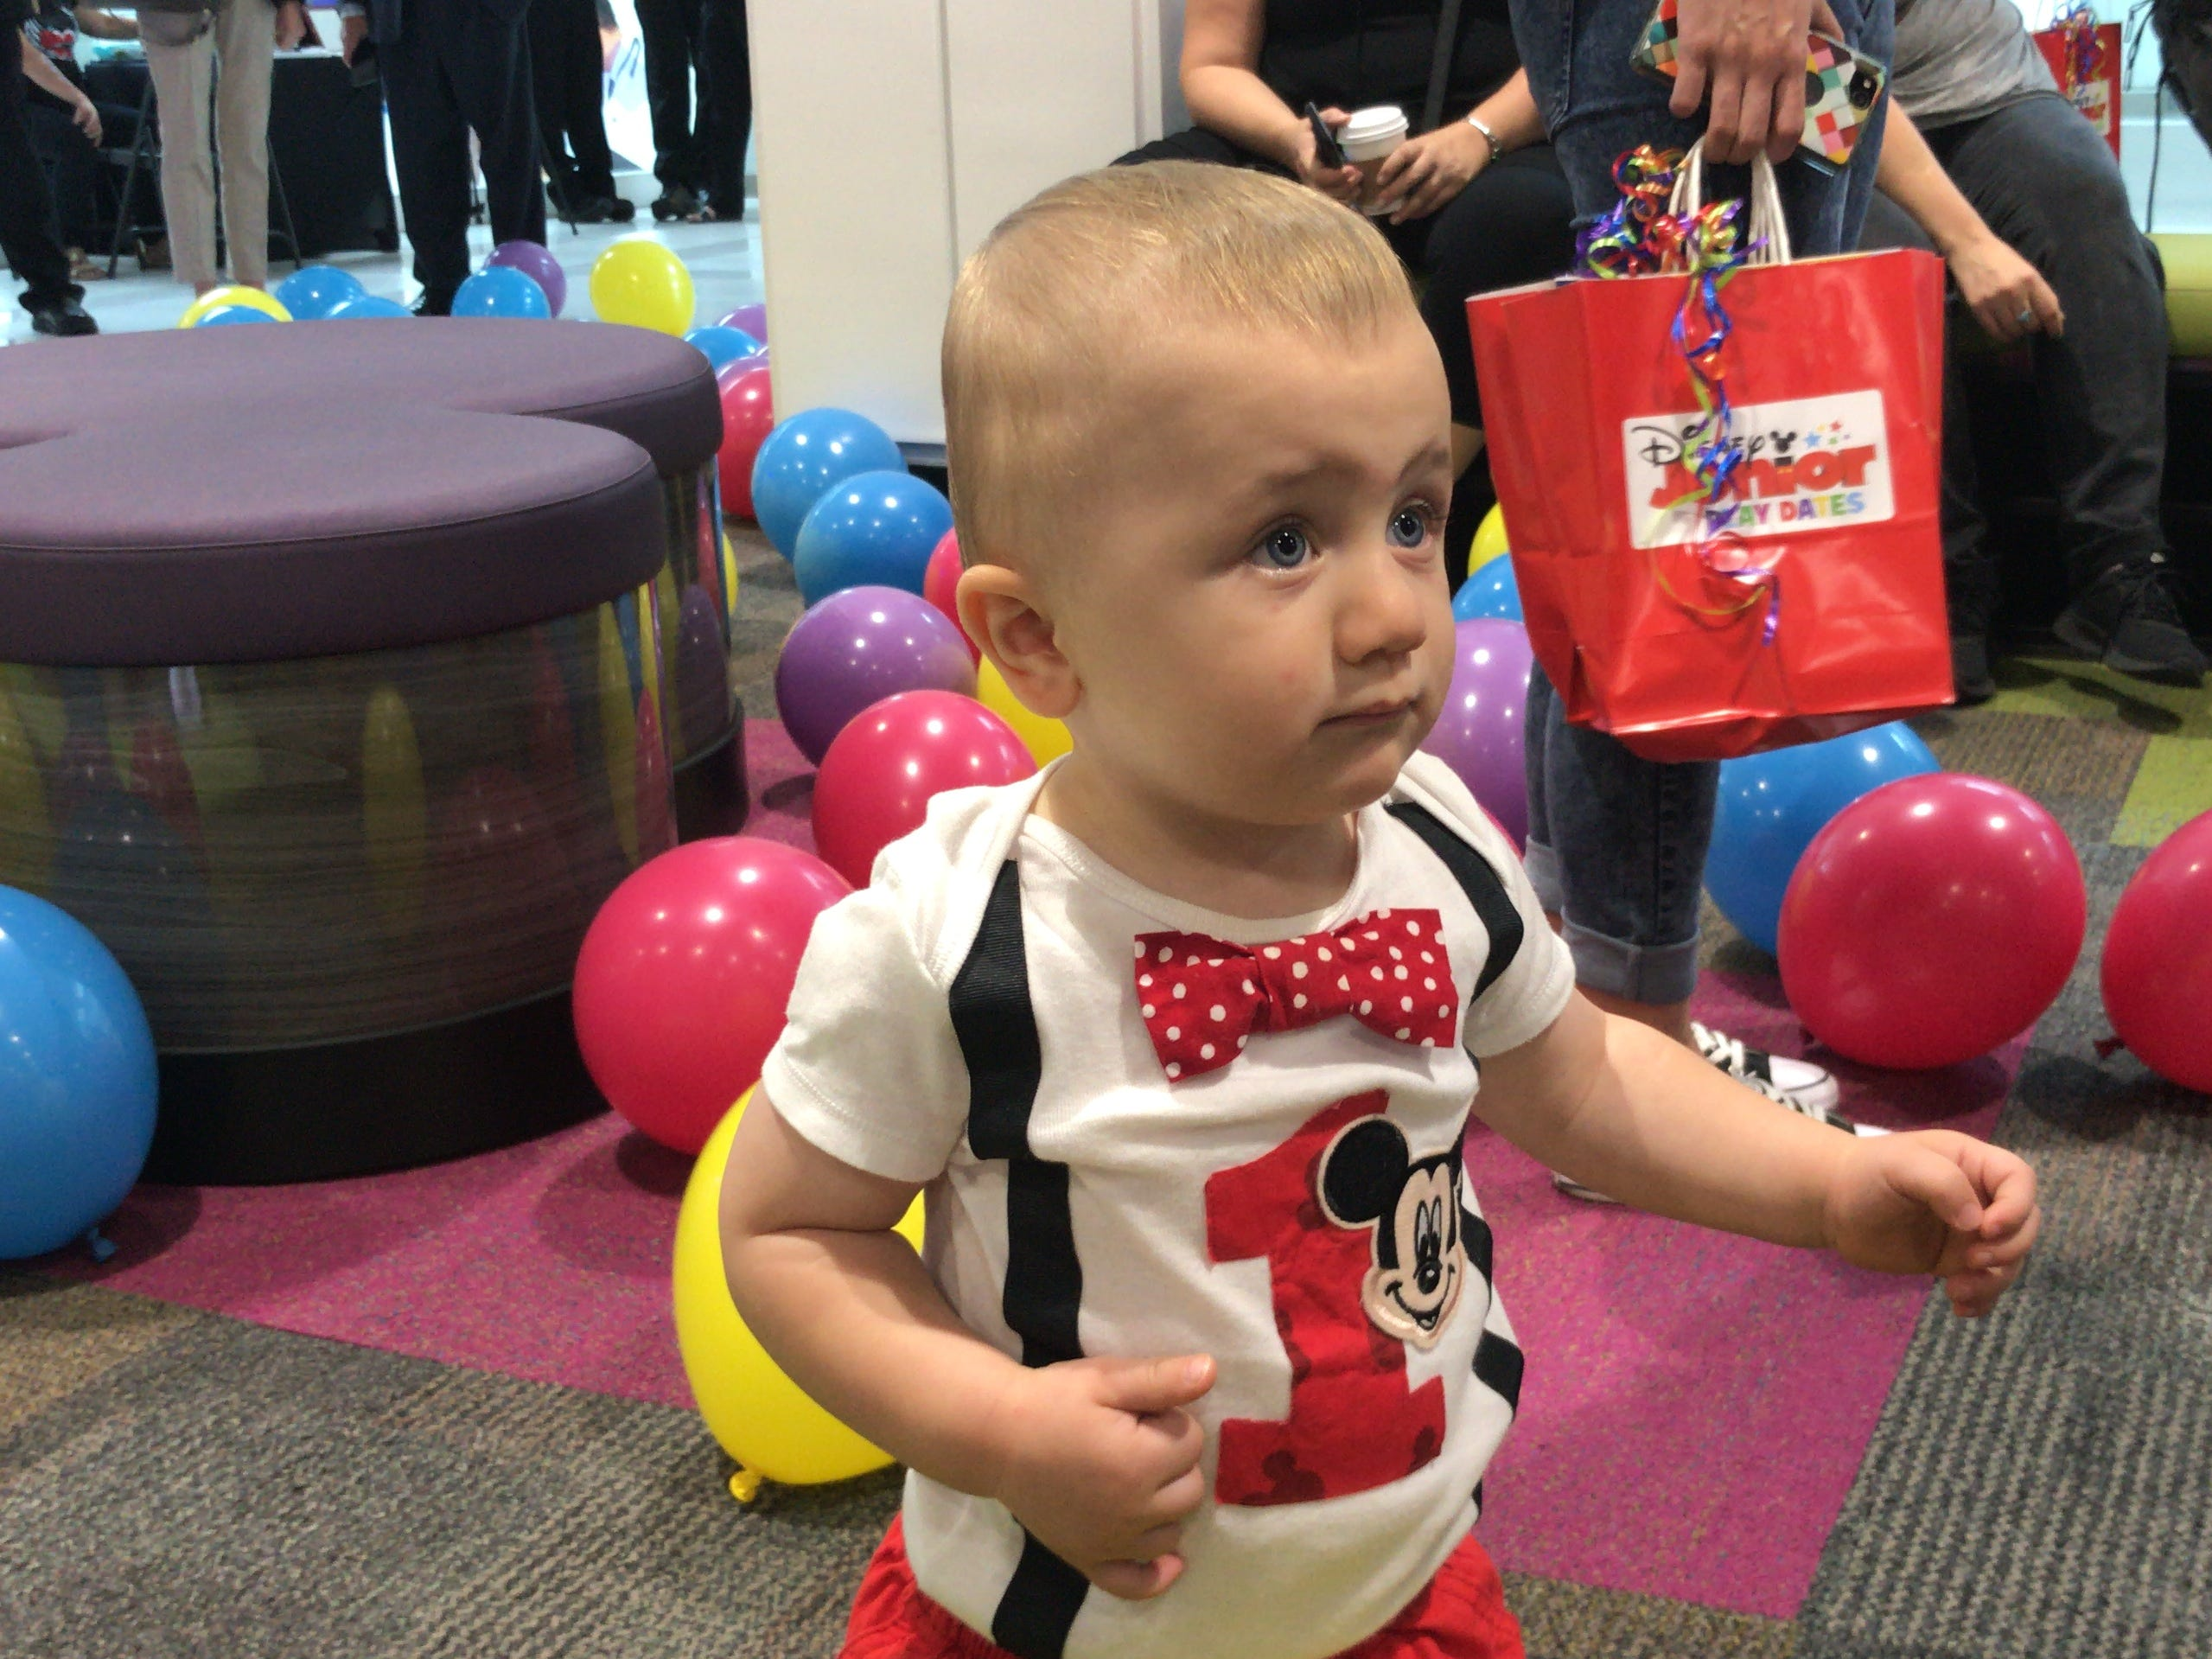 Sawyer, 1, of Mercer County, enjoys the newly opened Disney Junior Play Zone at Menlo Park Mall in Edison.